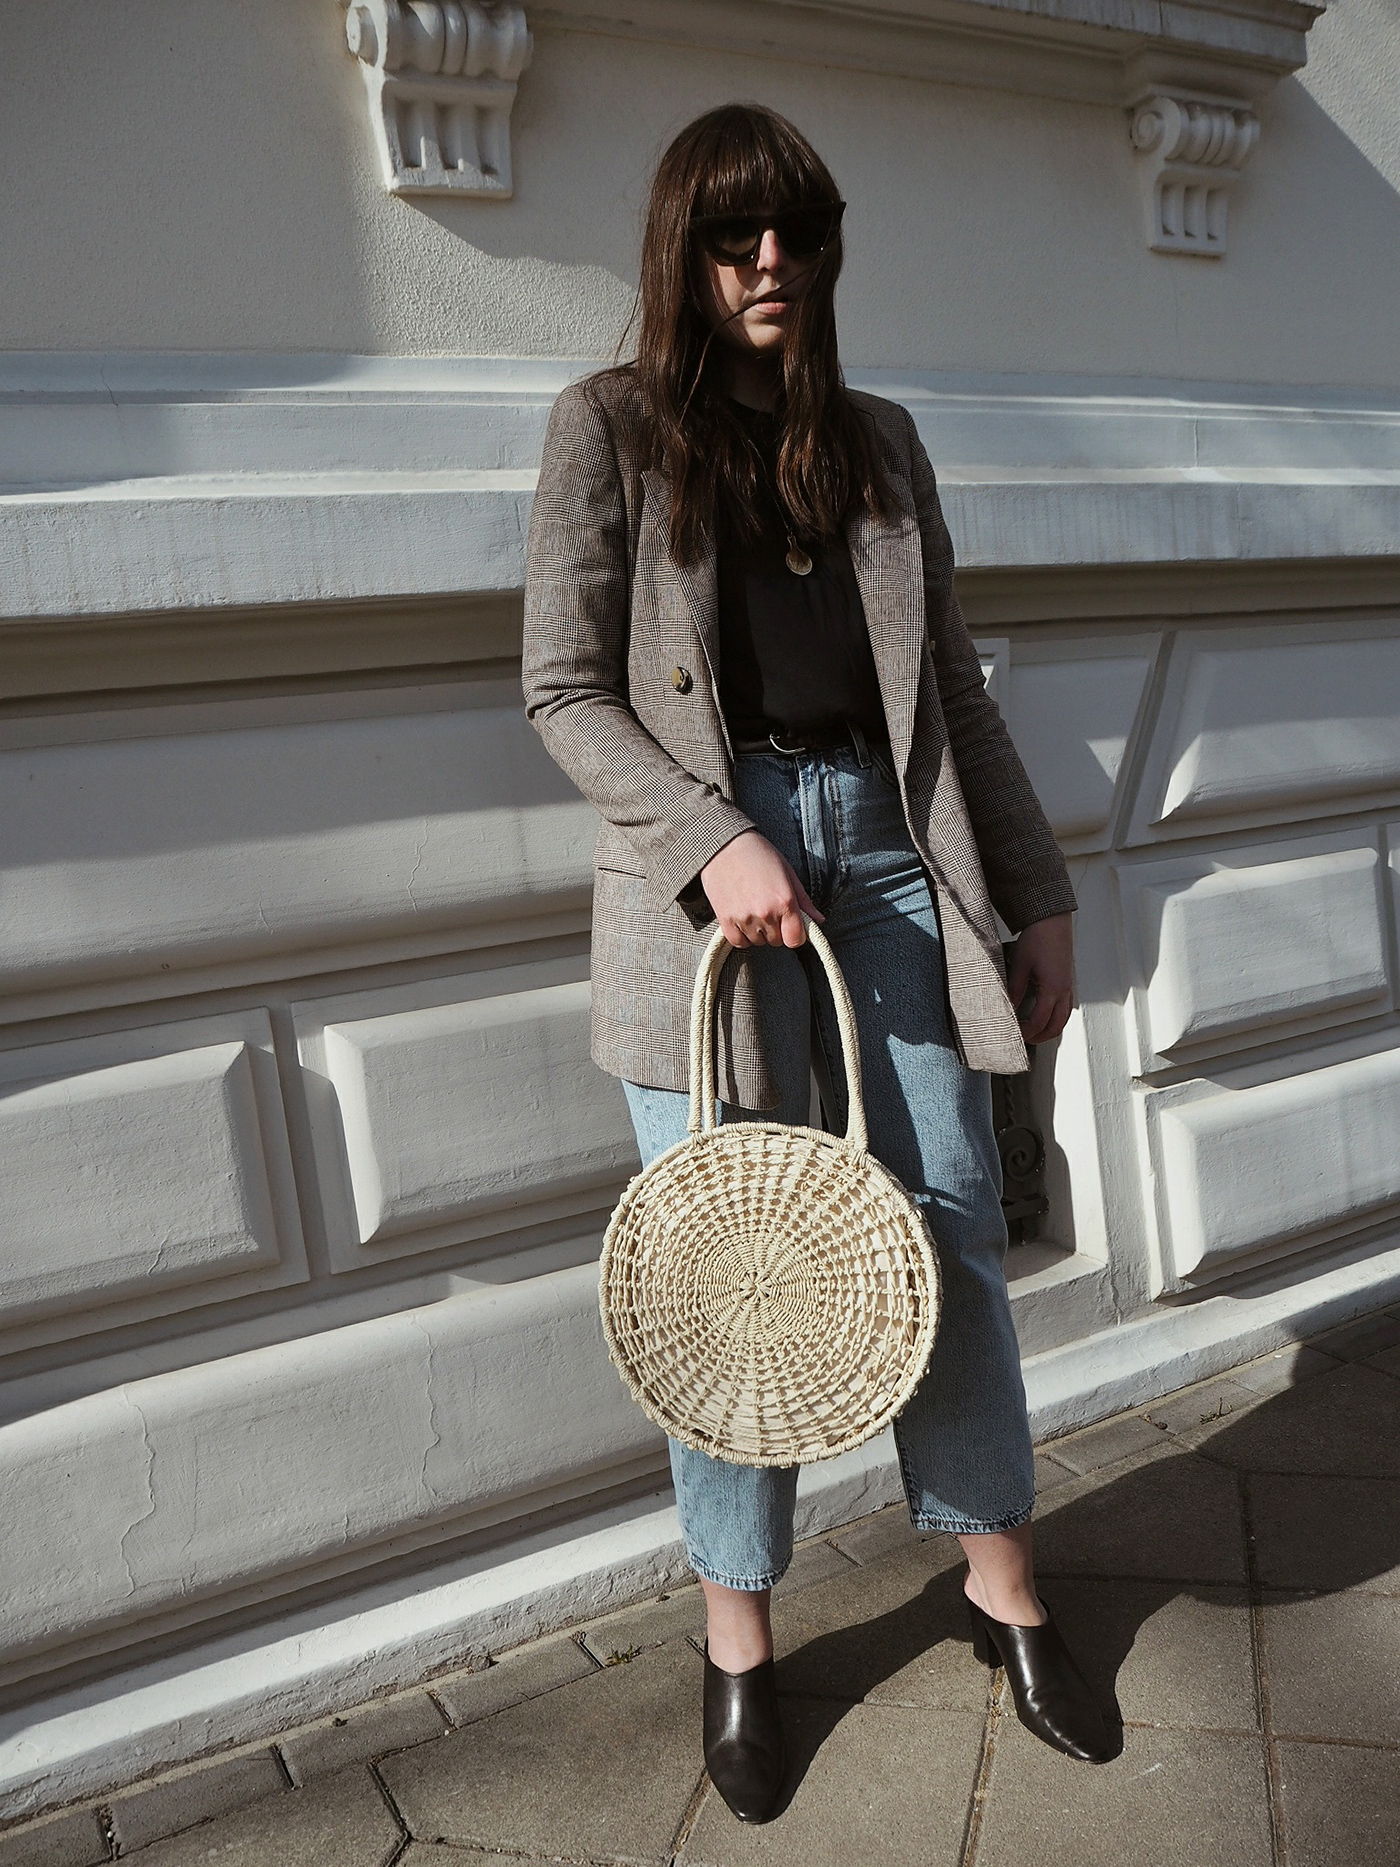 go-to-outfit-oversized-blazer-loose-fit-levis-jeans-julia-carevic